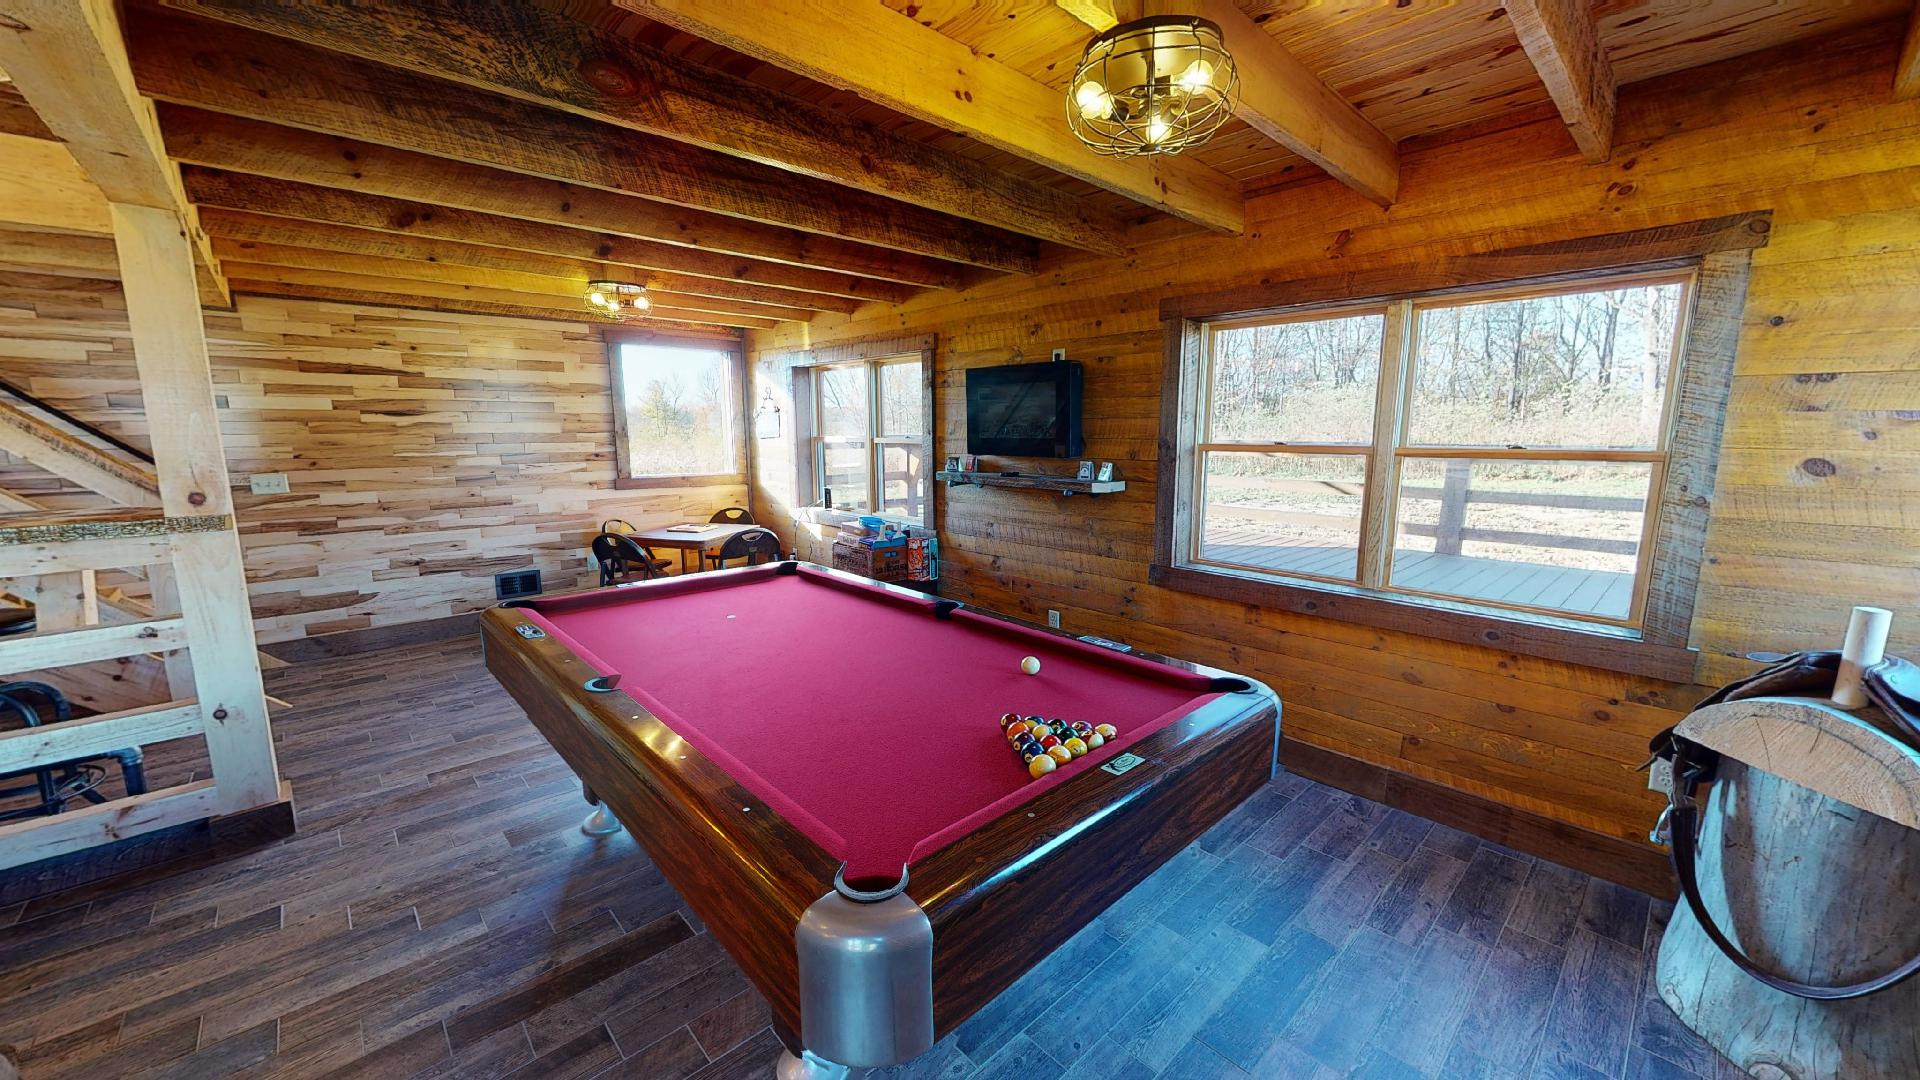 Photo 2006_9052.jpg - The Barn houses the vintage pool table. Along with croquet, board games, and more.